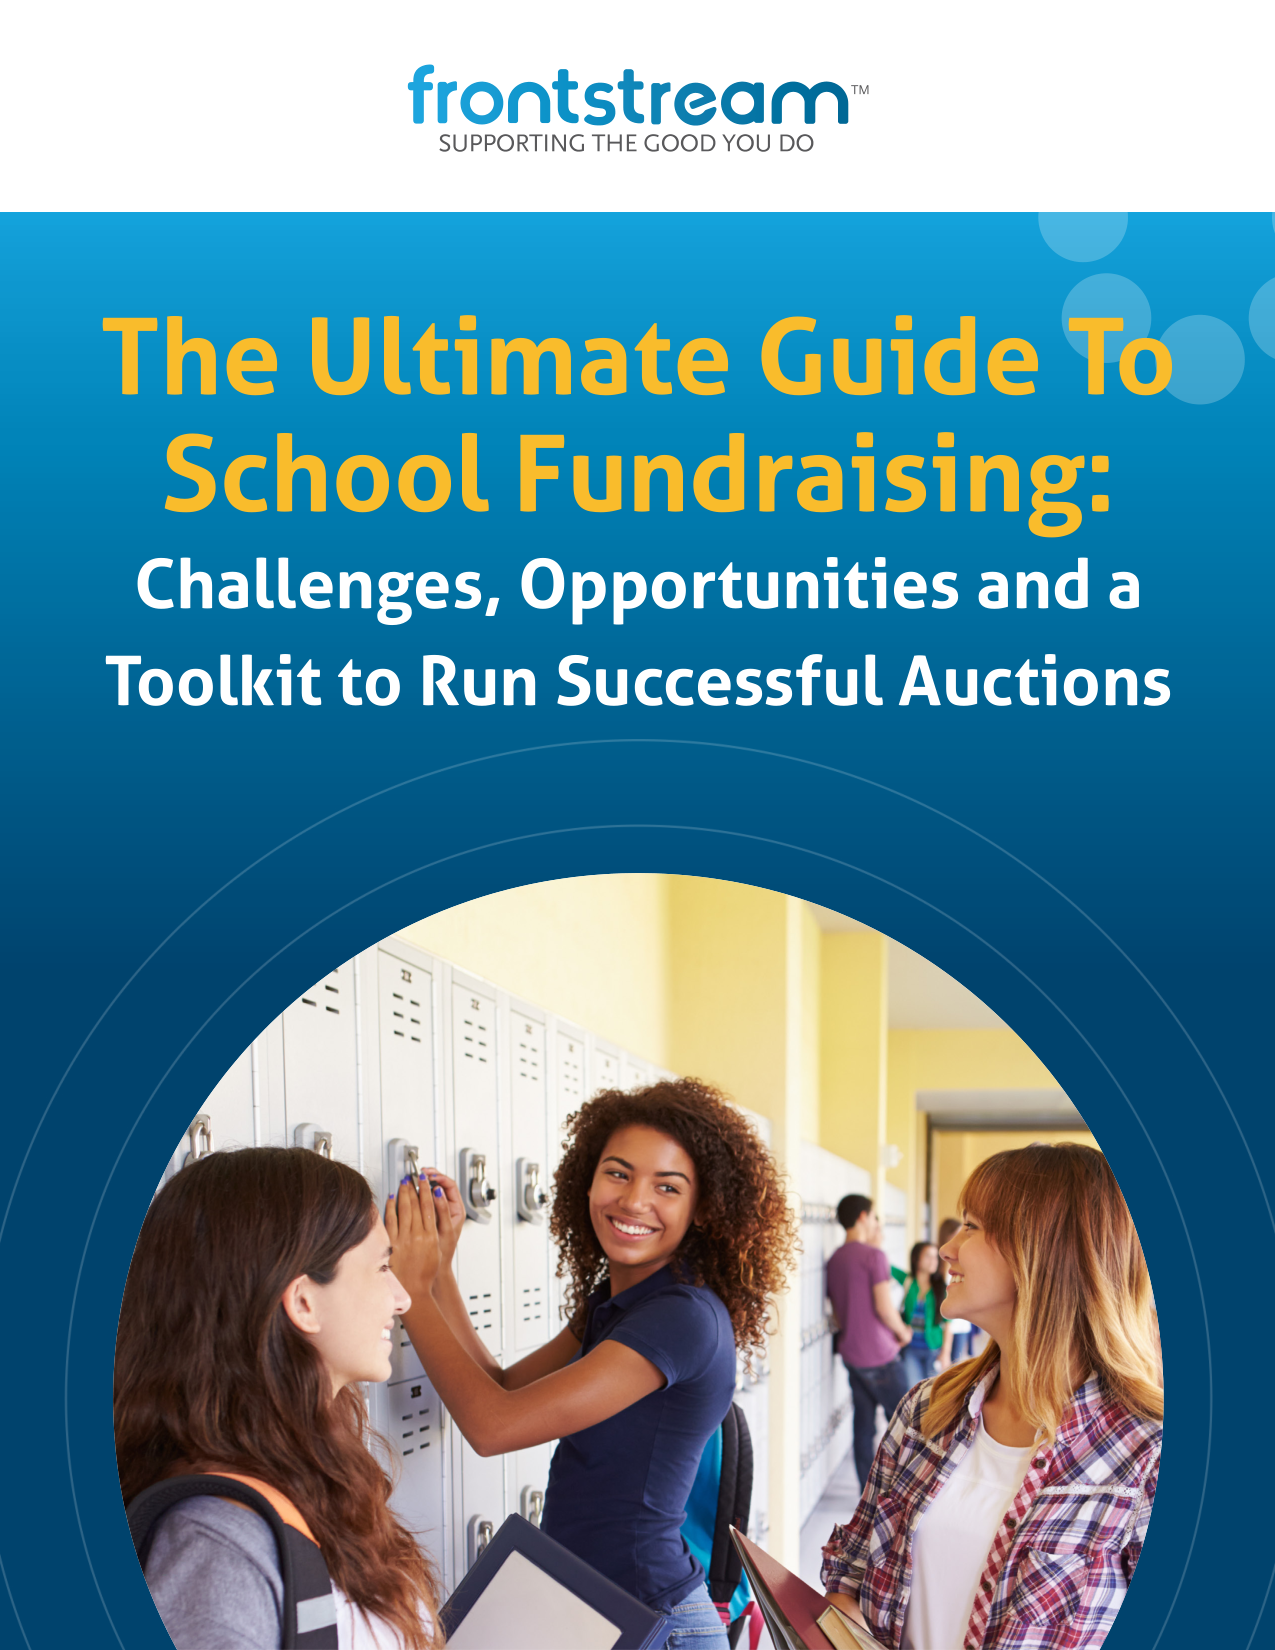 FrontStream The Ultimate Guide To School Fundraising (final)